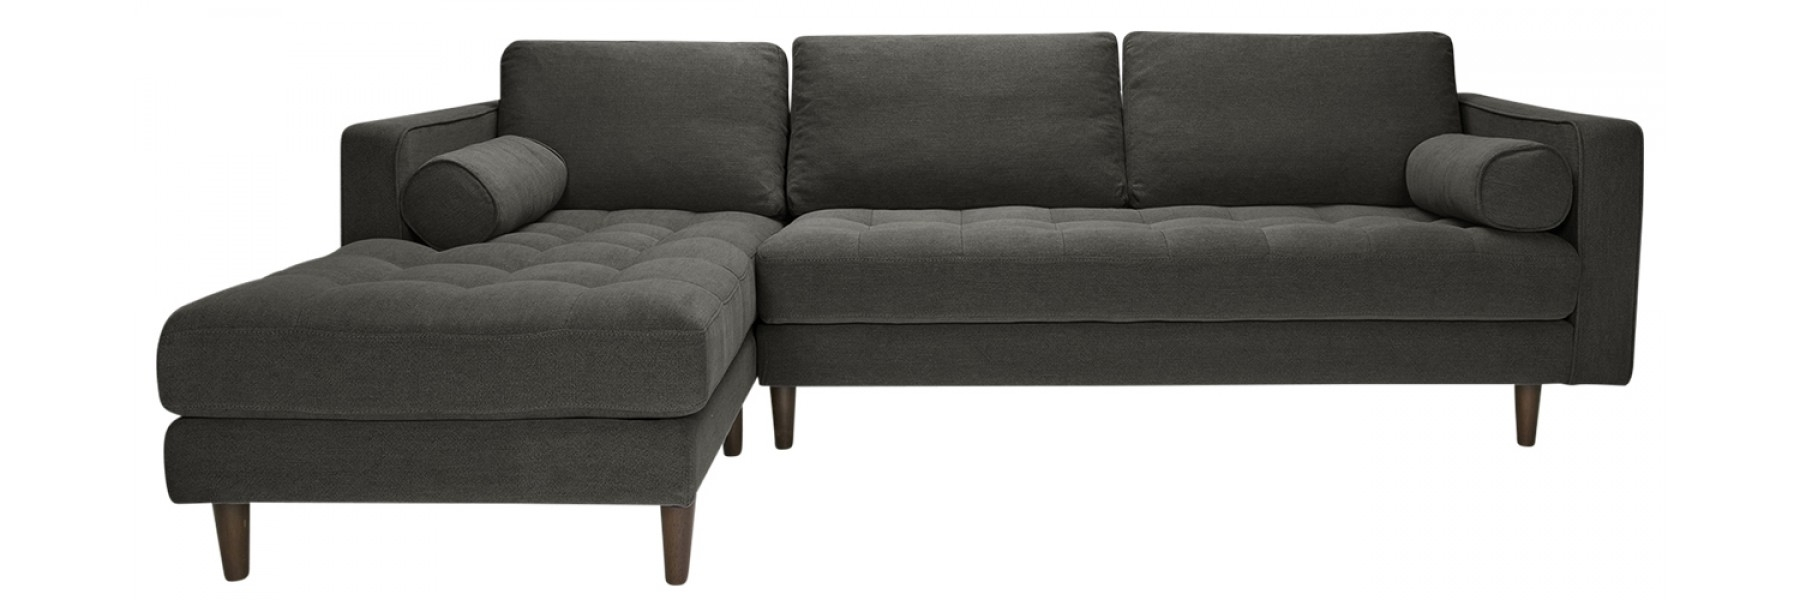 Sawyer Laf Sectional Stoned Slate Regarding Harper Foam 3 Piece Sectionals With Raf Chaise (Image 18 of 25)